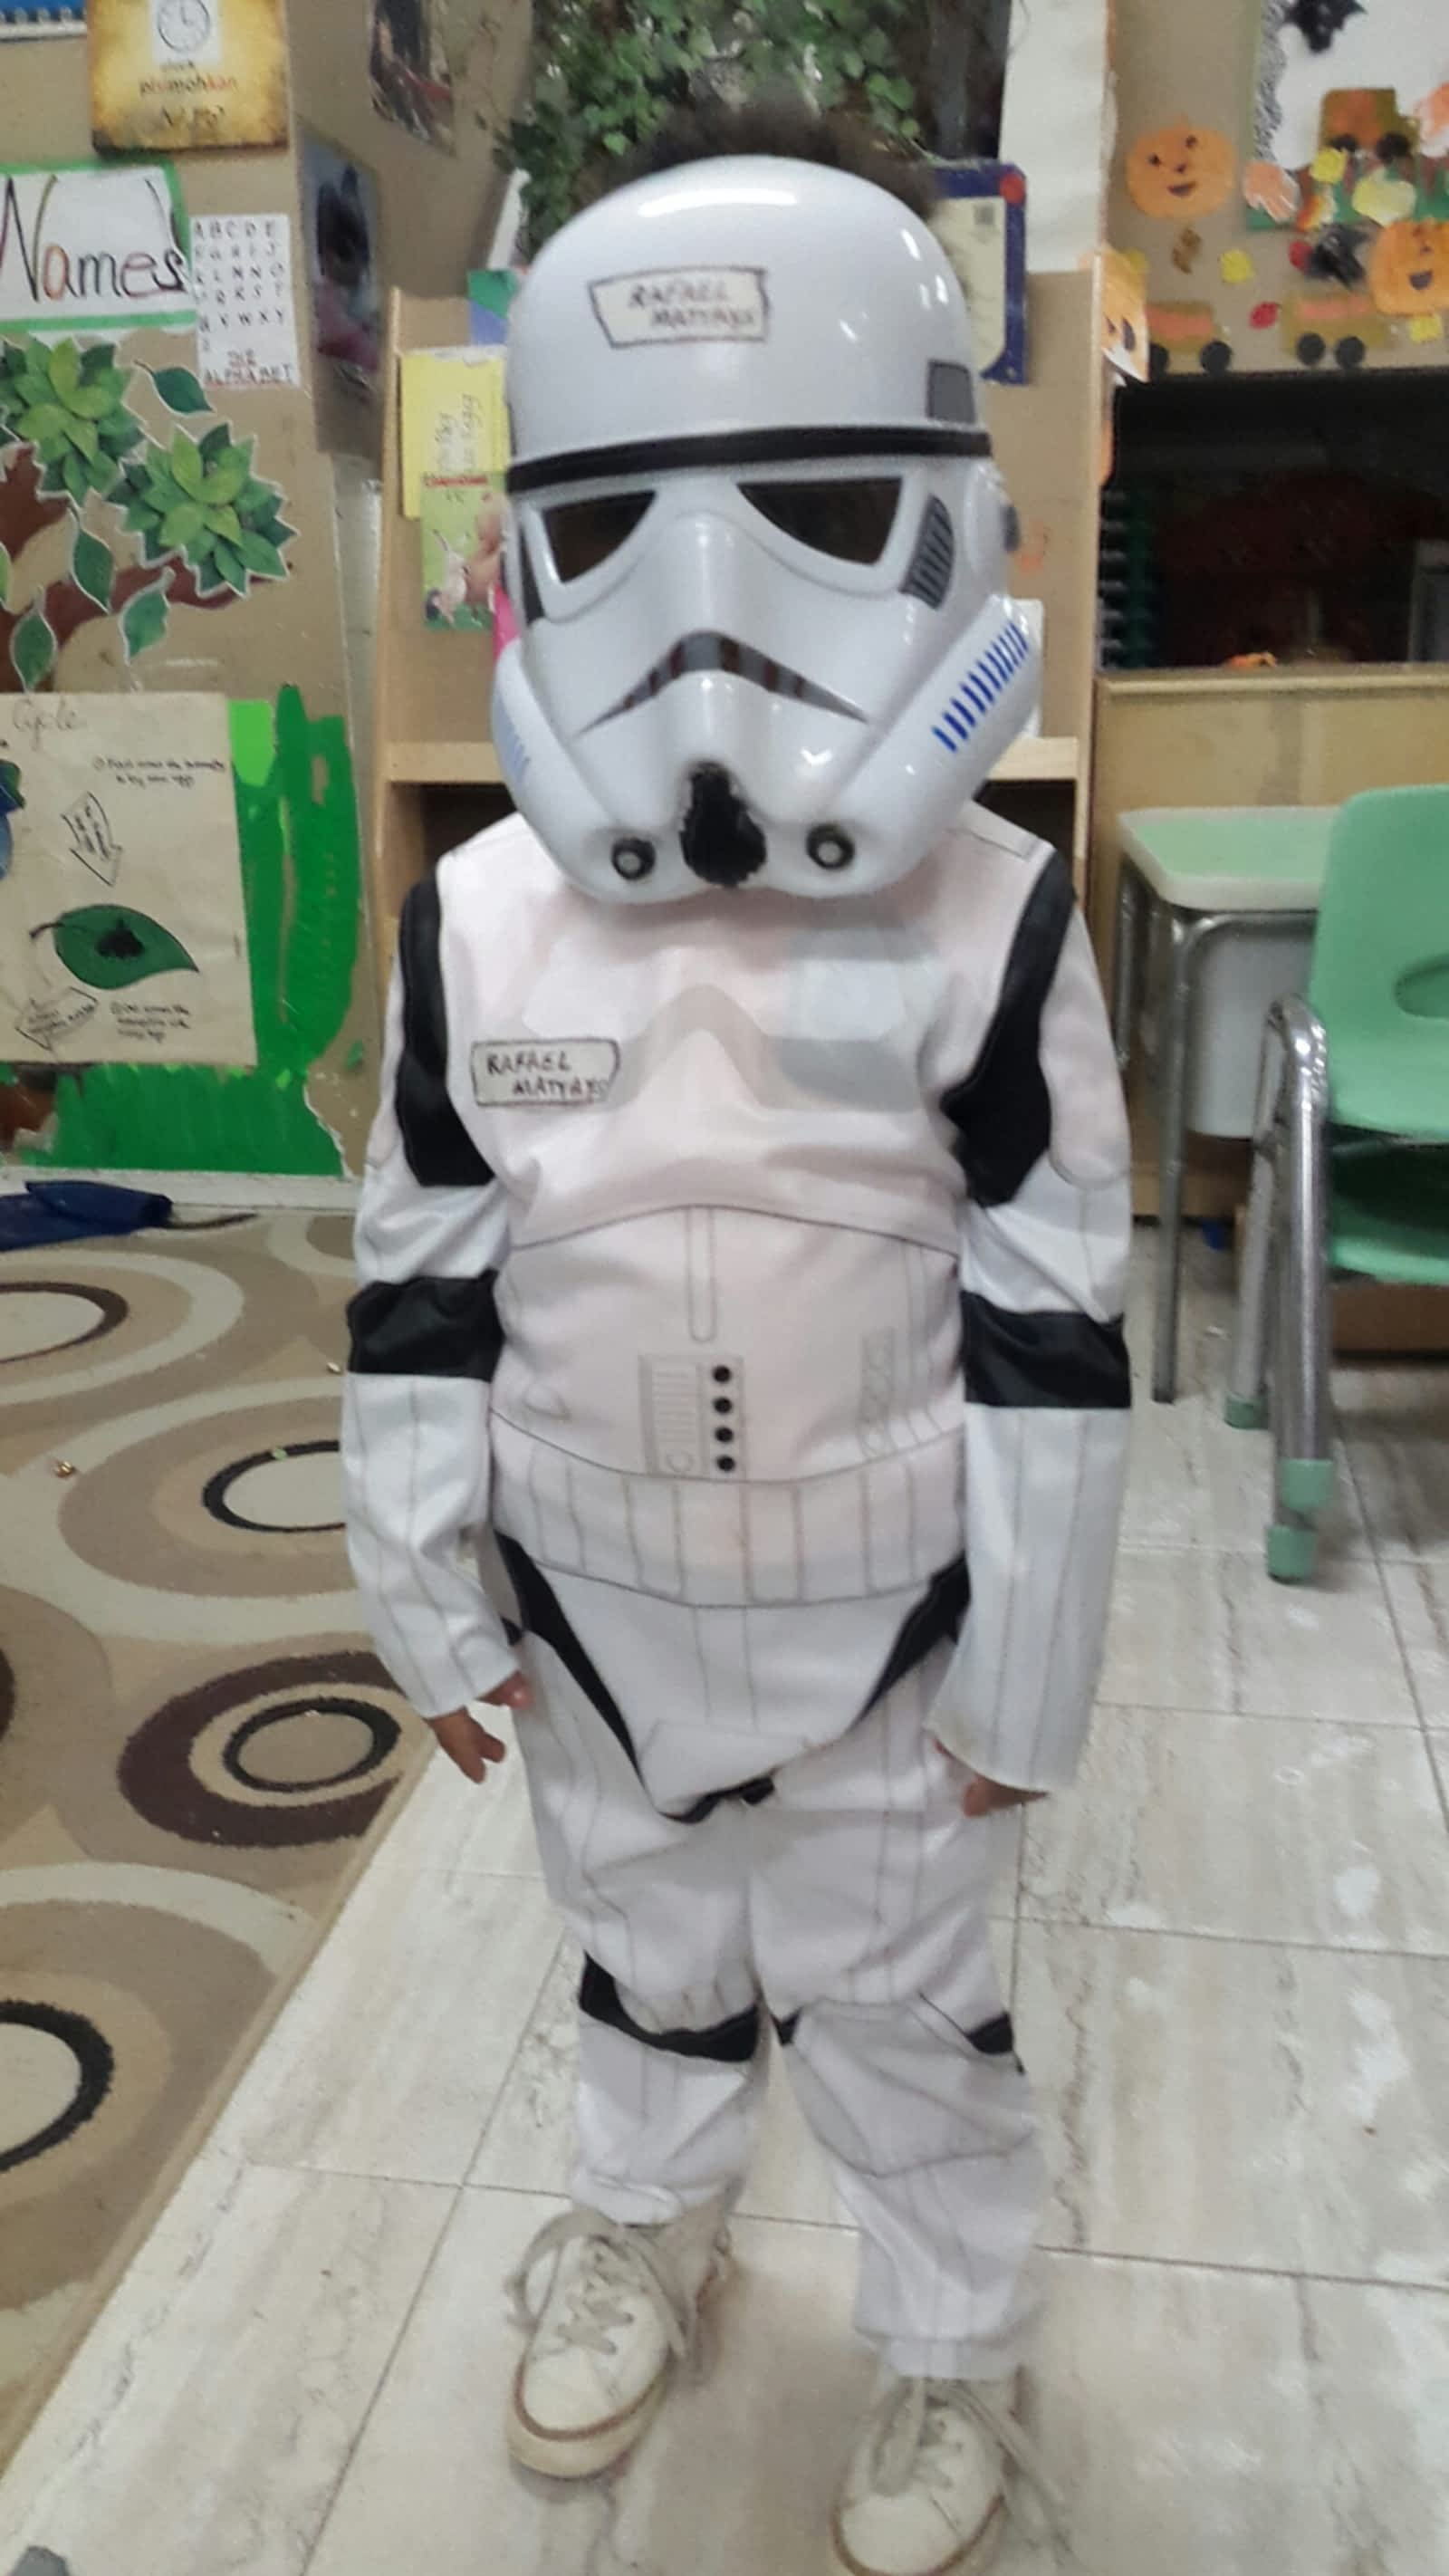 Star Wars character